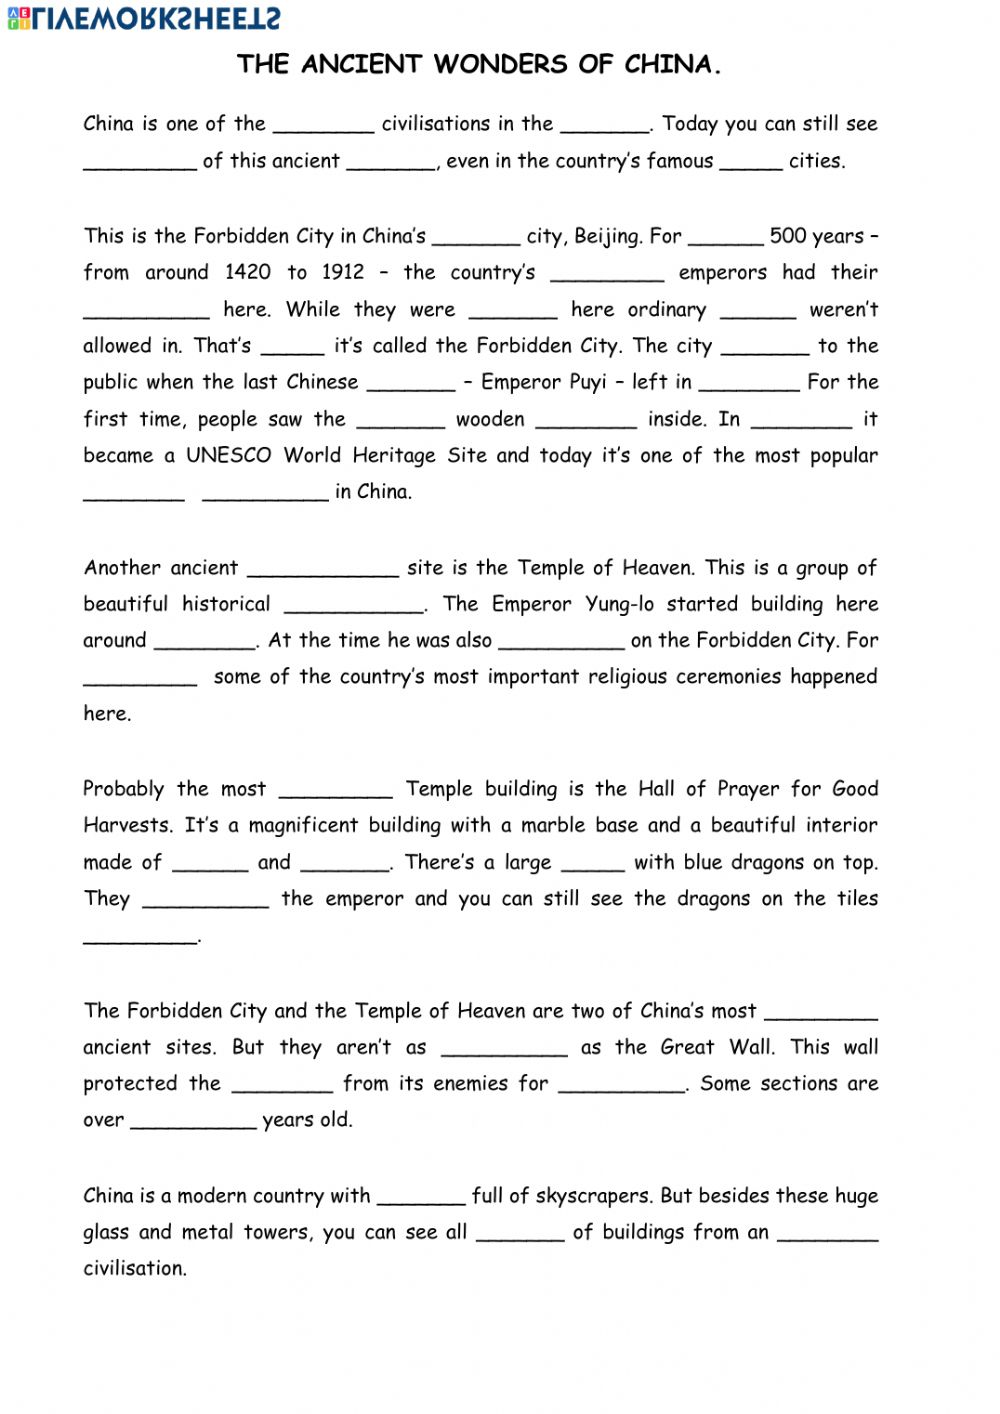 hight resolution of The ancient wonders of China worksheet